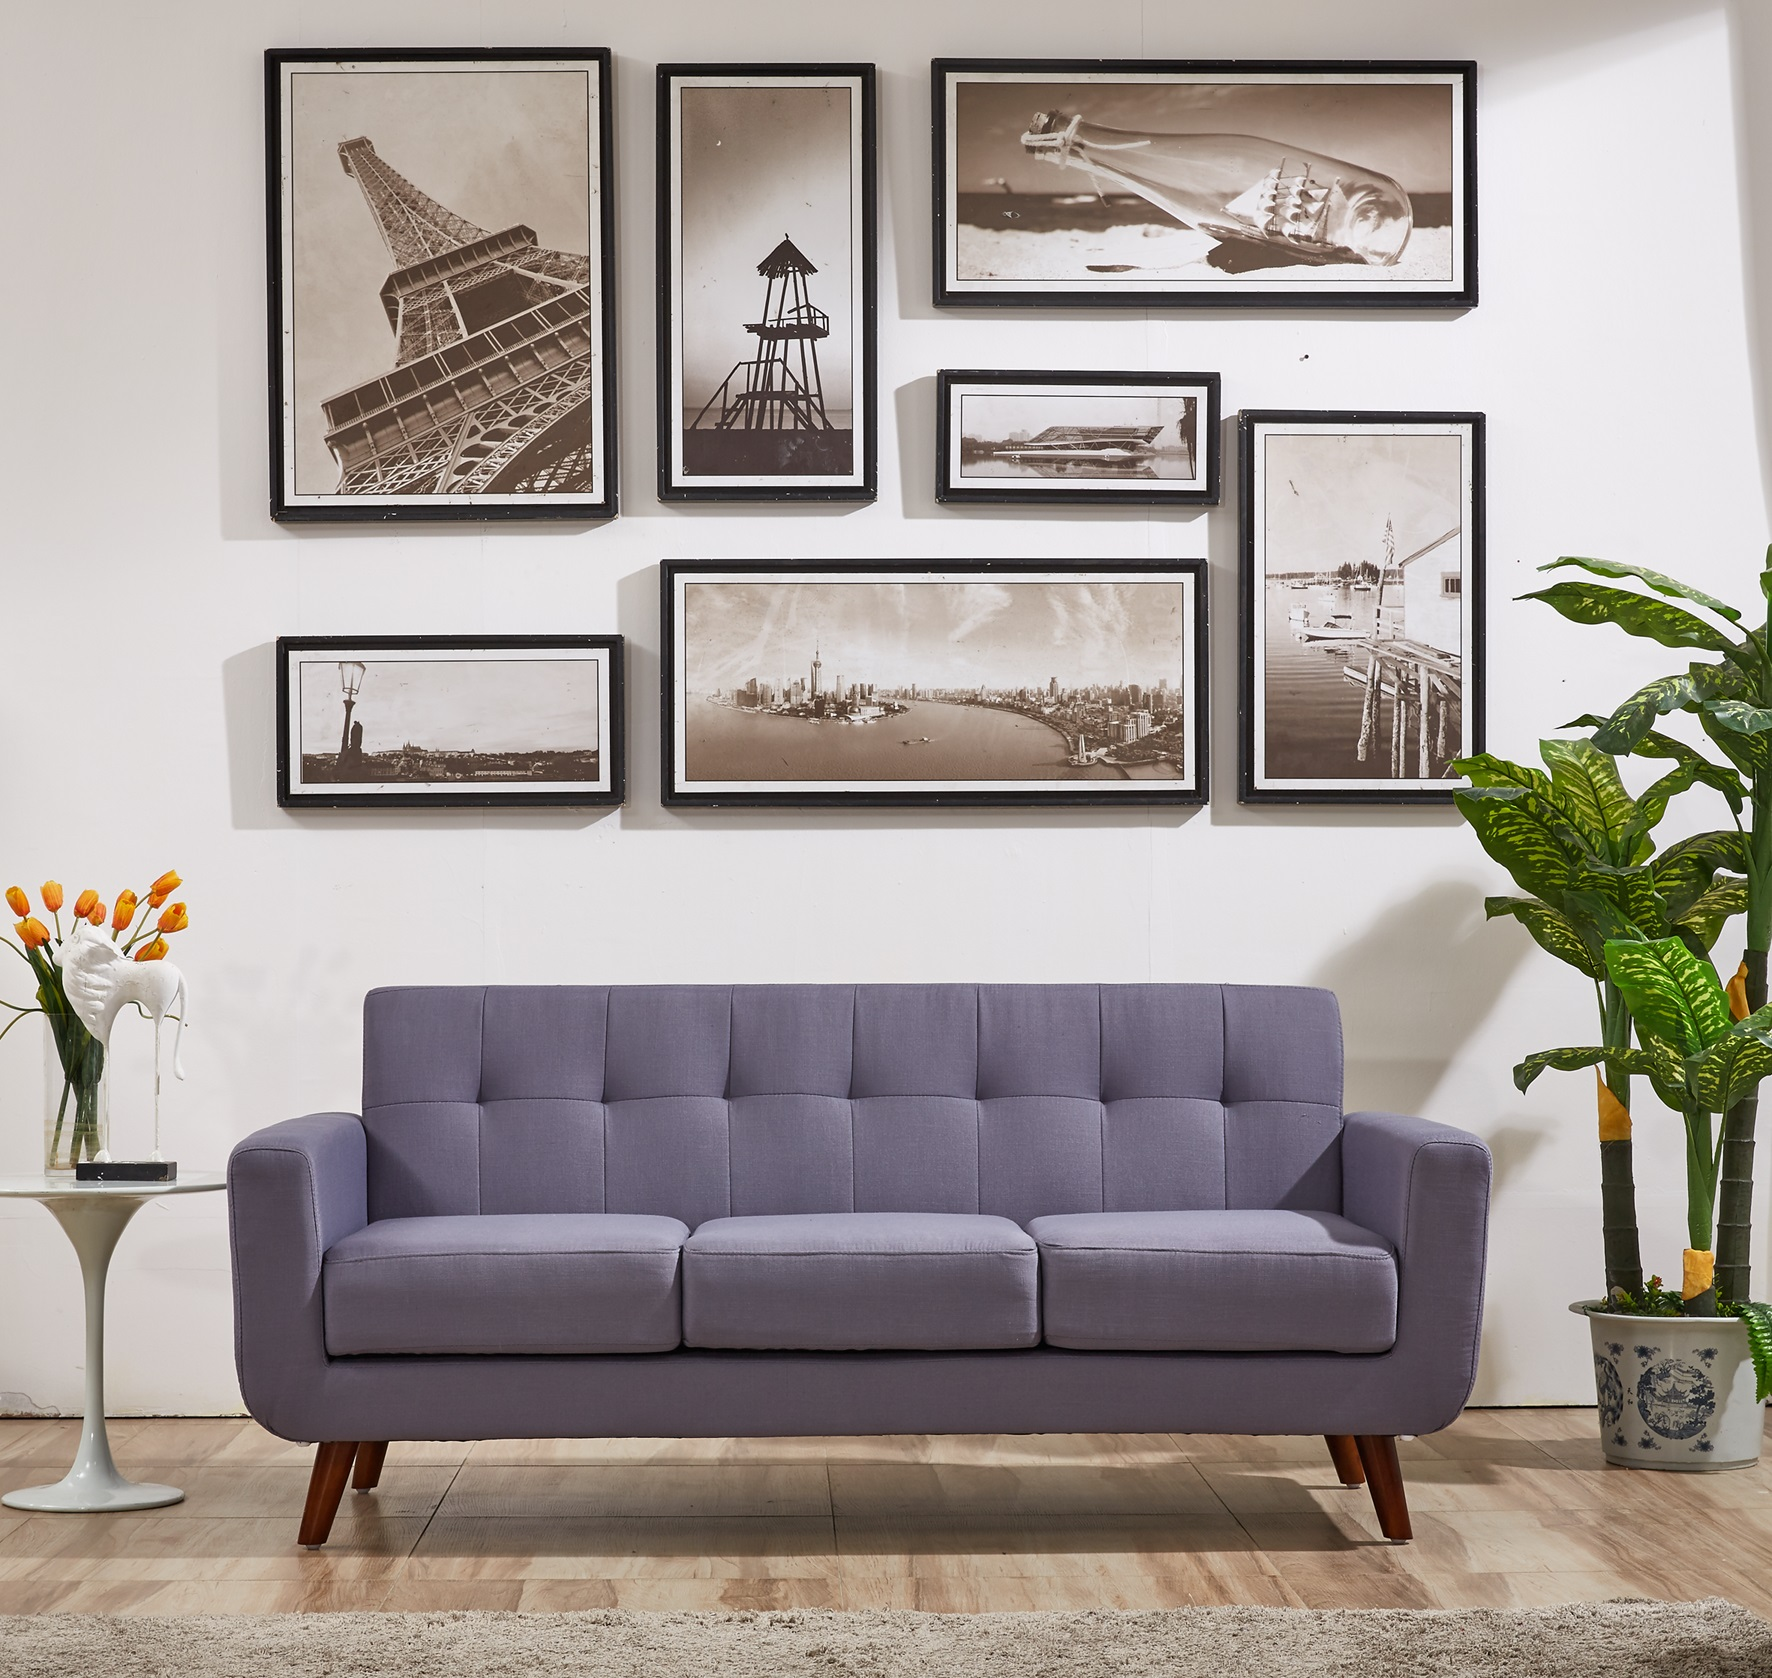 Brilliant Details About Mid Century Modern Upholstery Sofa Tufted Living Room Office Coach In Taupe Gray Onthecornerstone Fun Painted Chair Ideas Images Onthecornerstoneorg